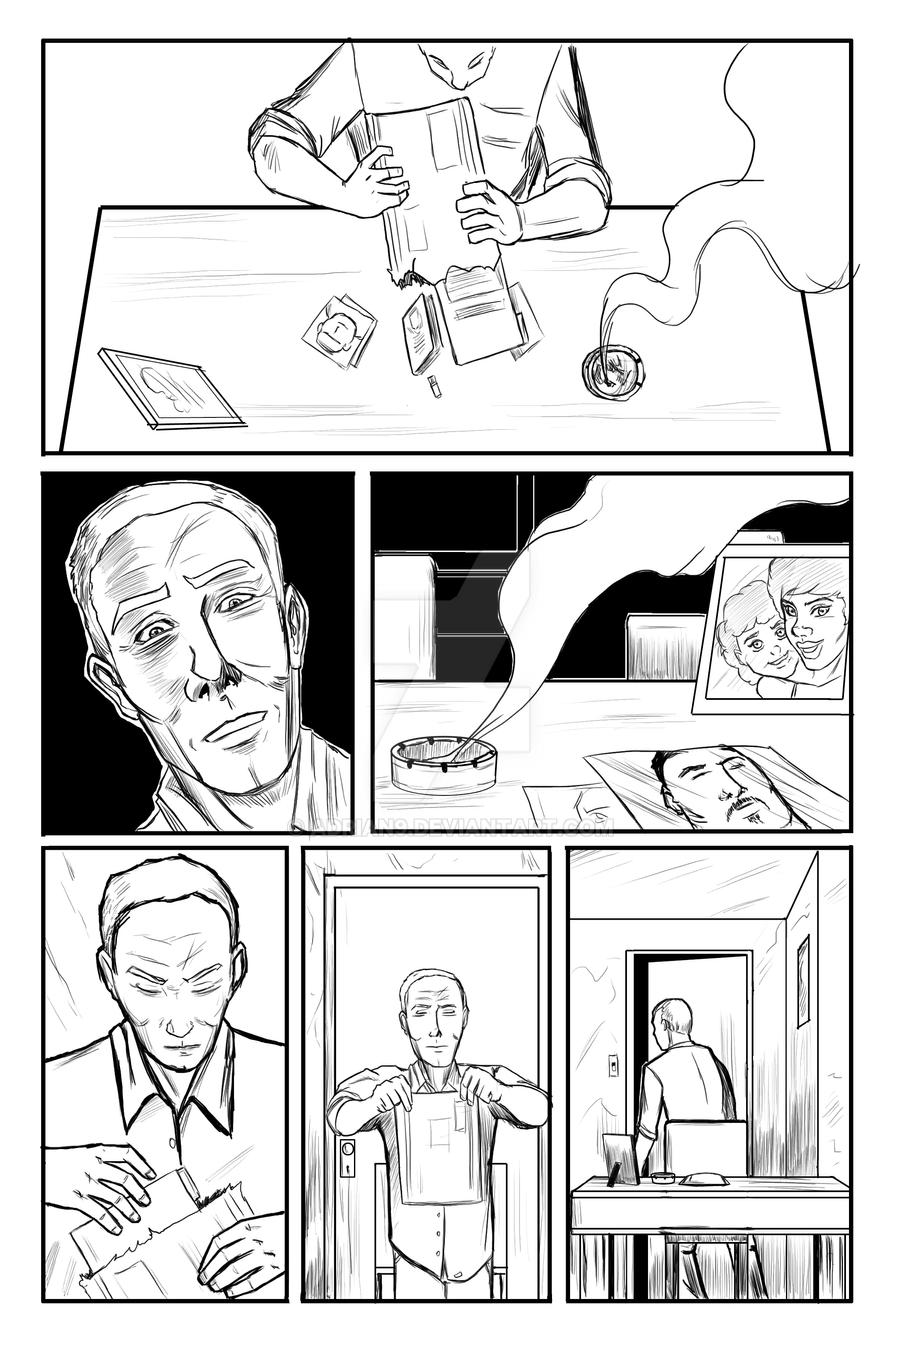 Quit PG3 by ADRIAN9